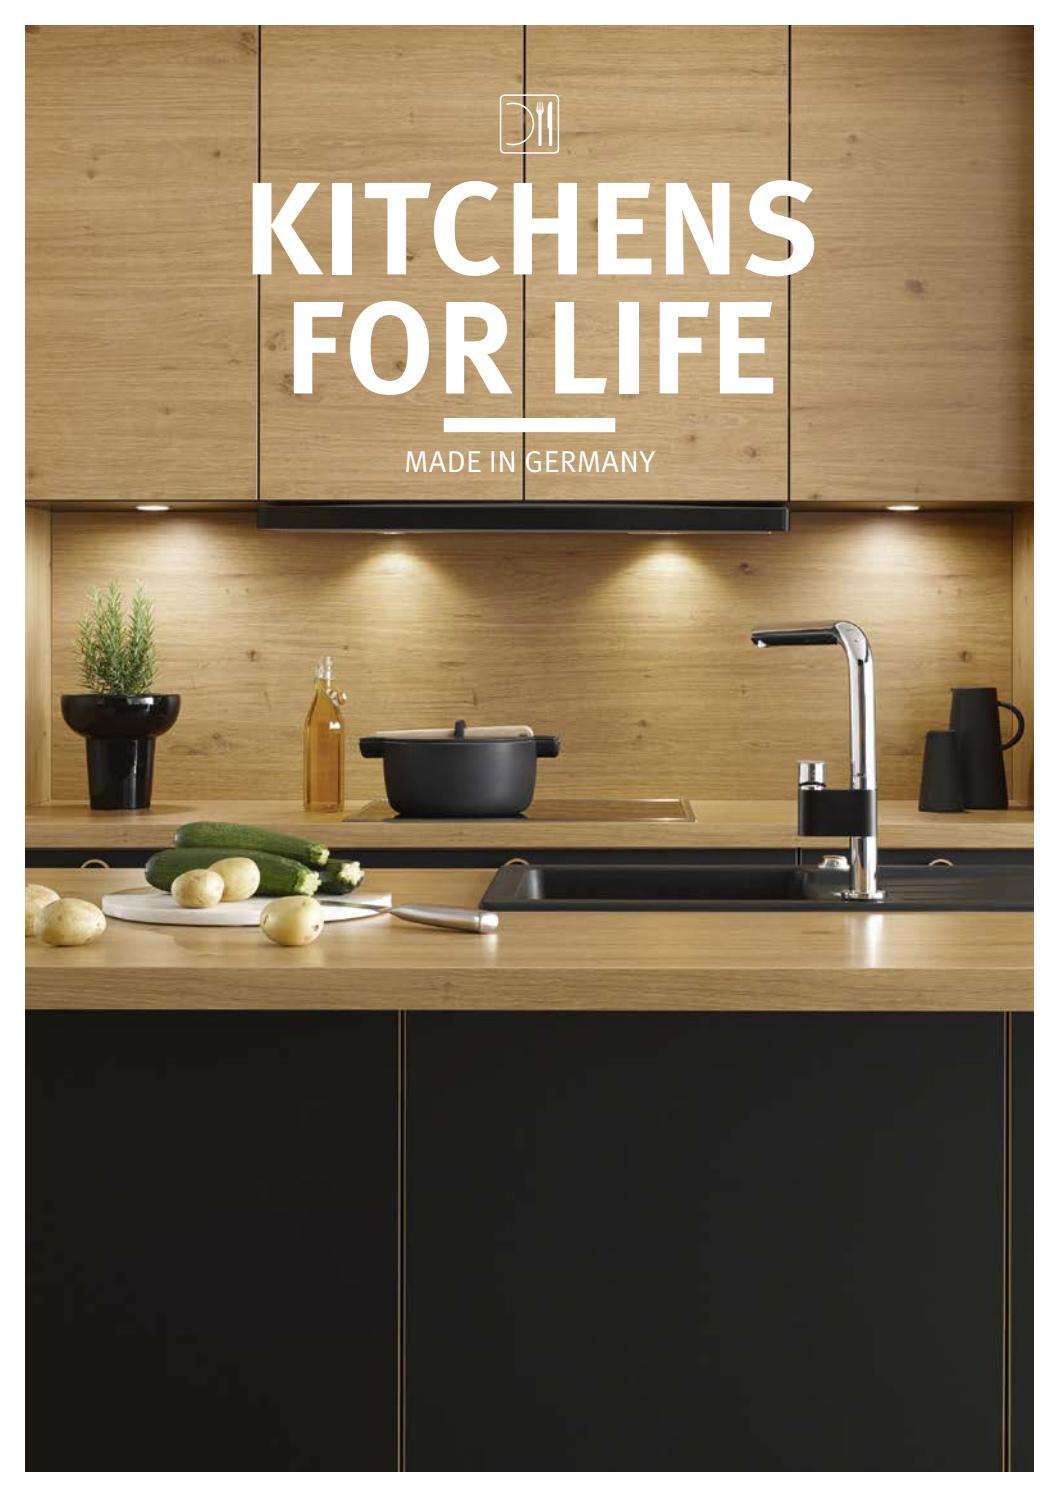 Arbeitsplatte Küche Self Kitchens For Life By Ip Luxembourg Issuu